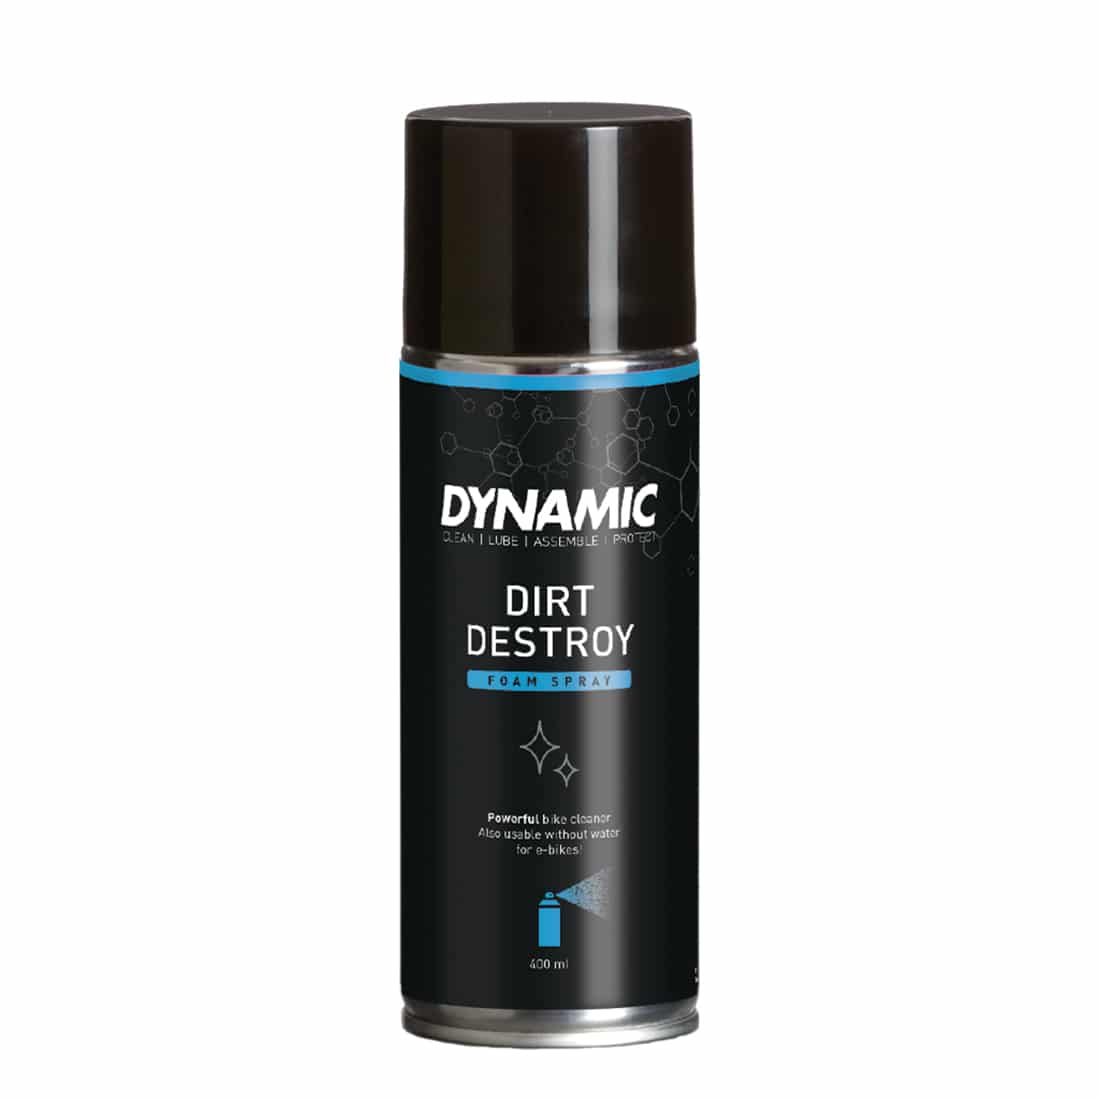 Dynamic Bike Care Dirt Destroy Foam Spray Bike Cleaning